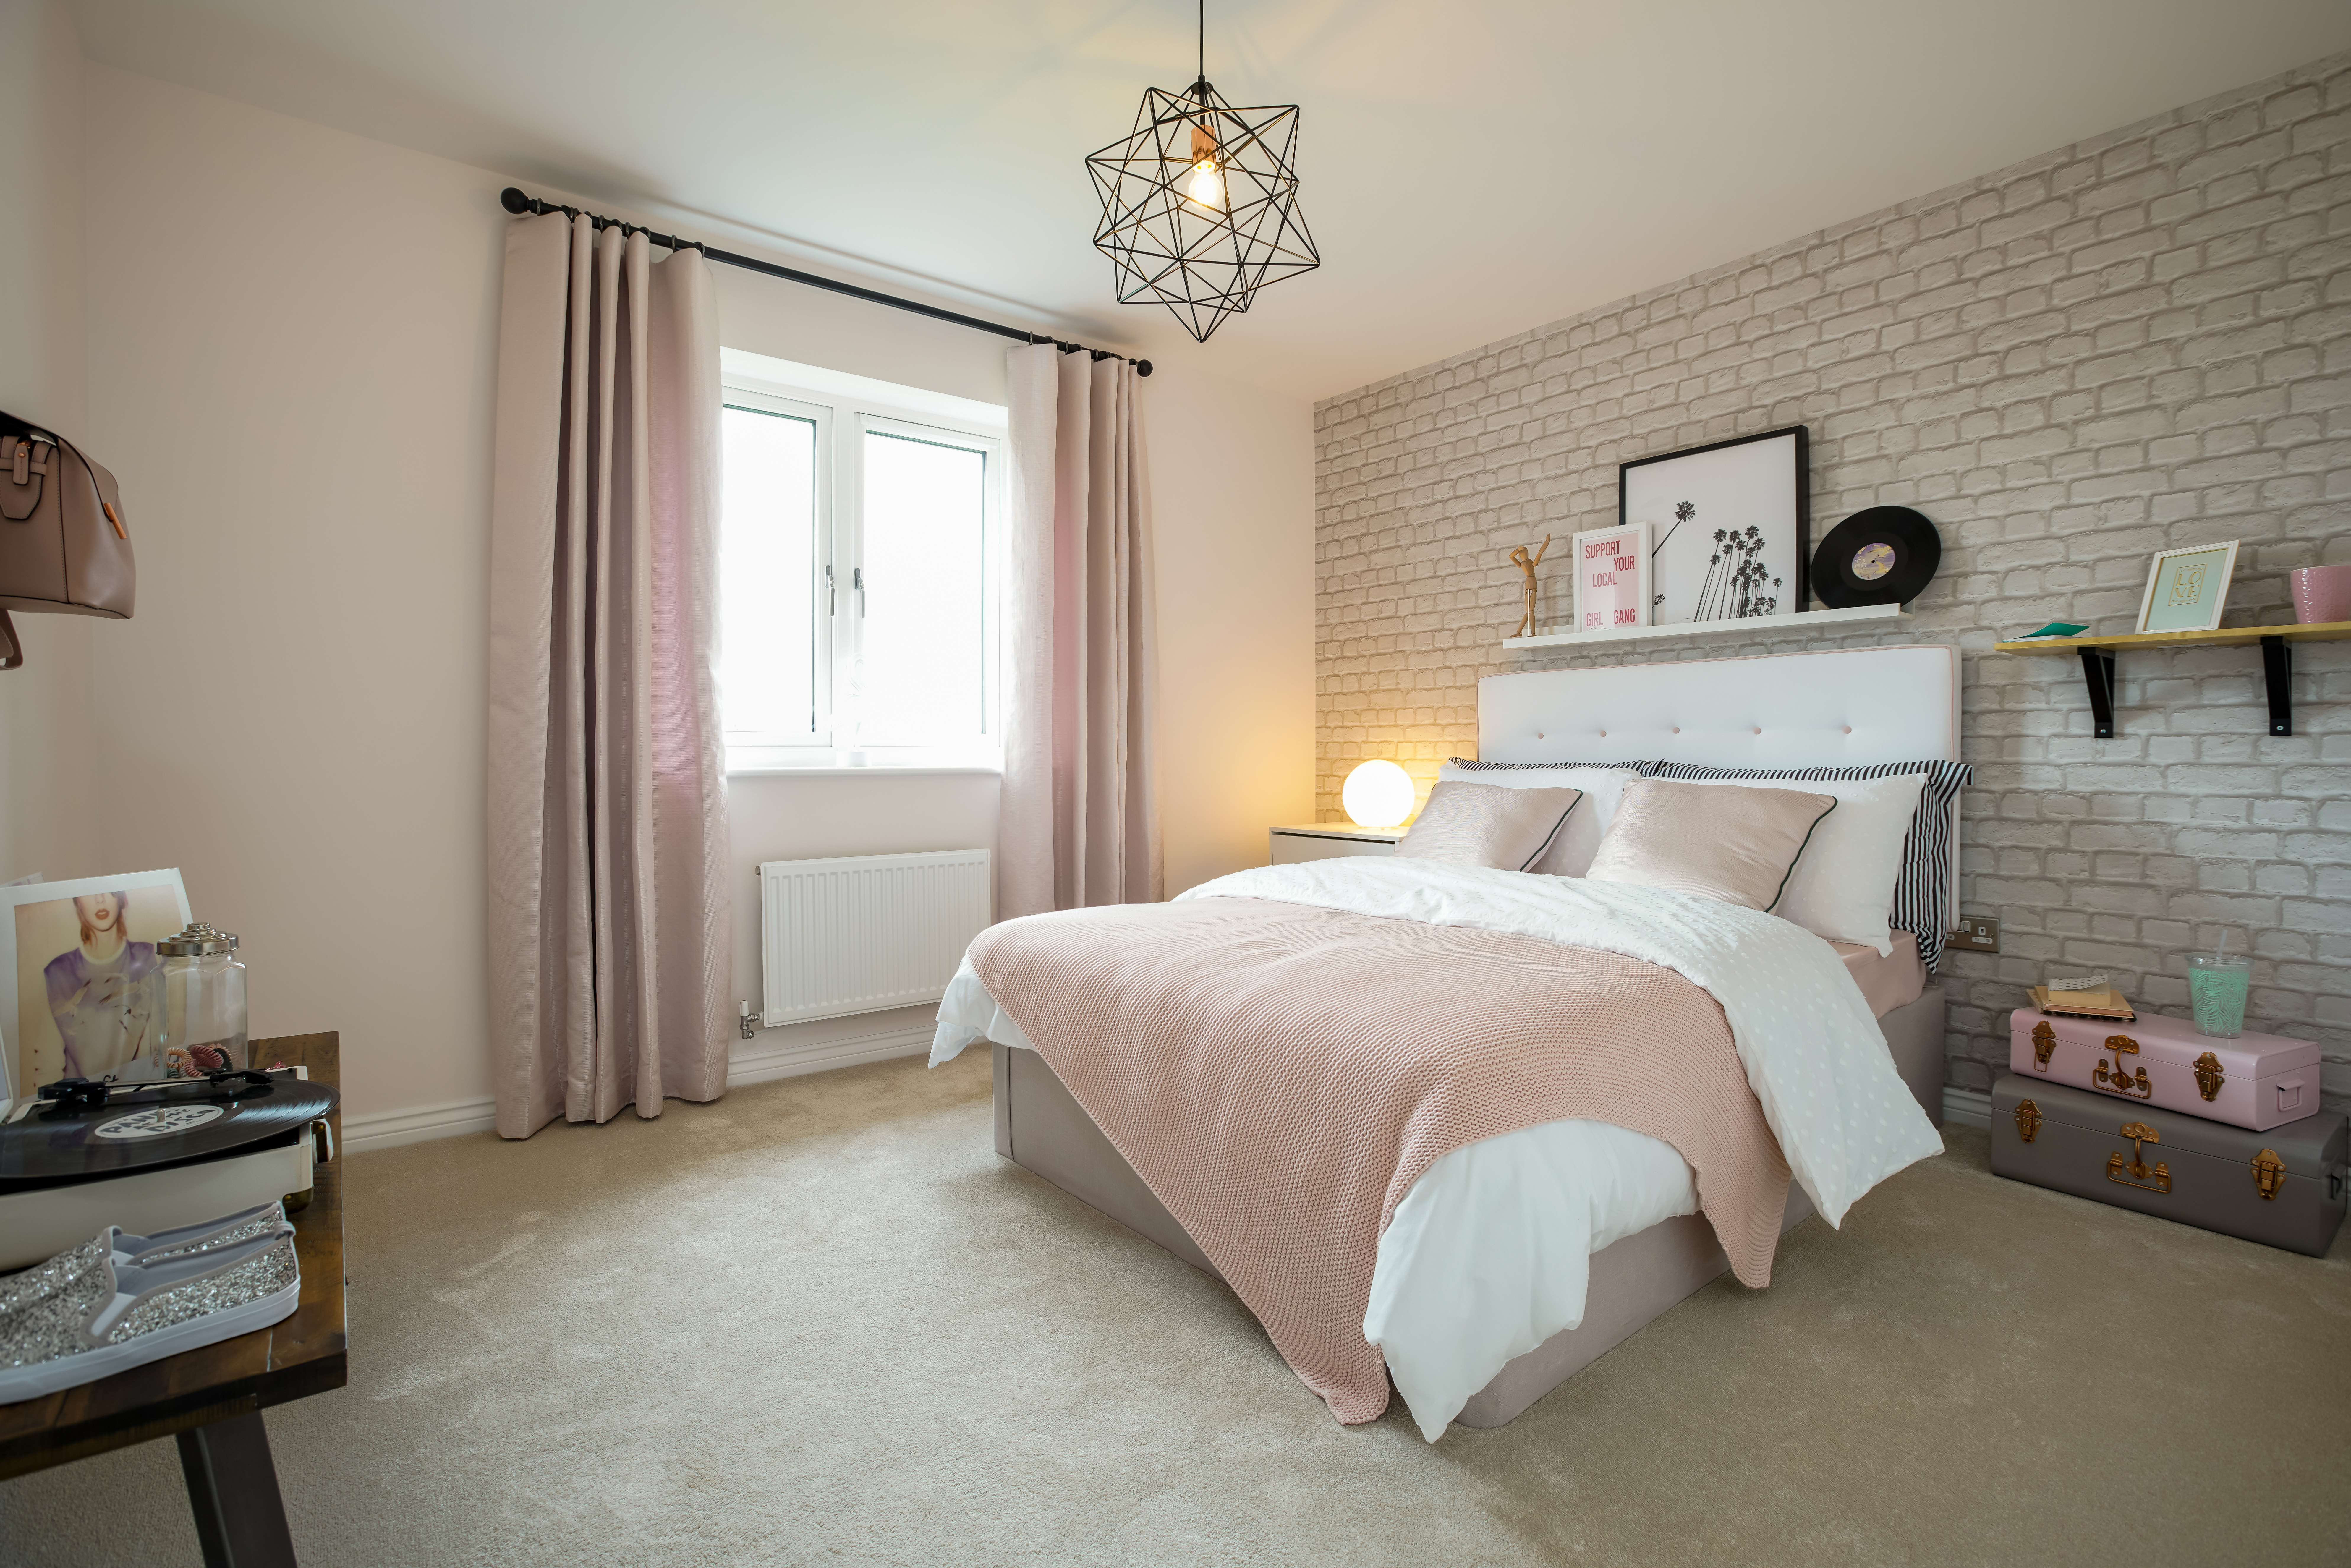 TW_NE_Eden Gardens_Downham_Bedroom 2 1